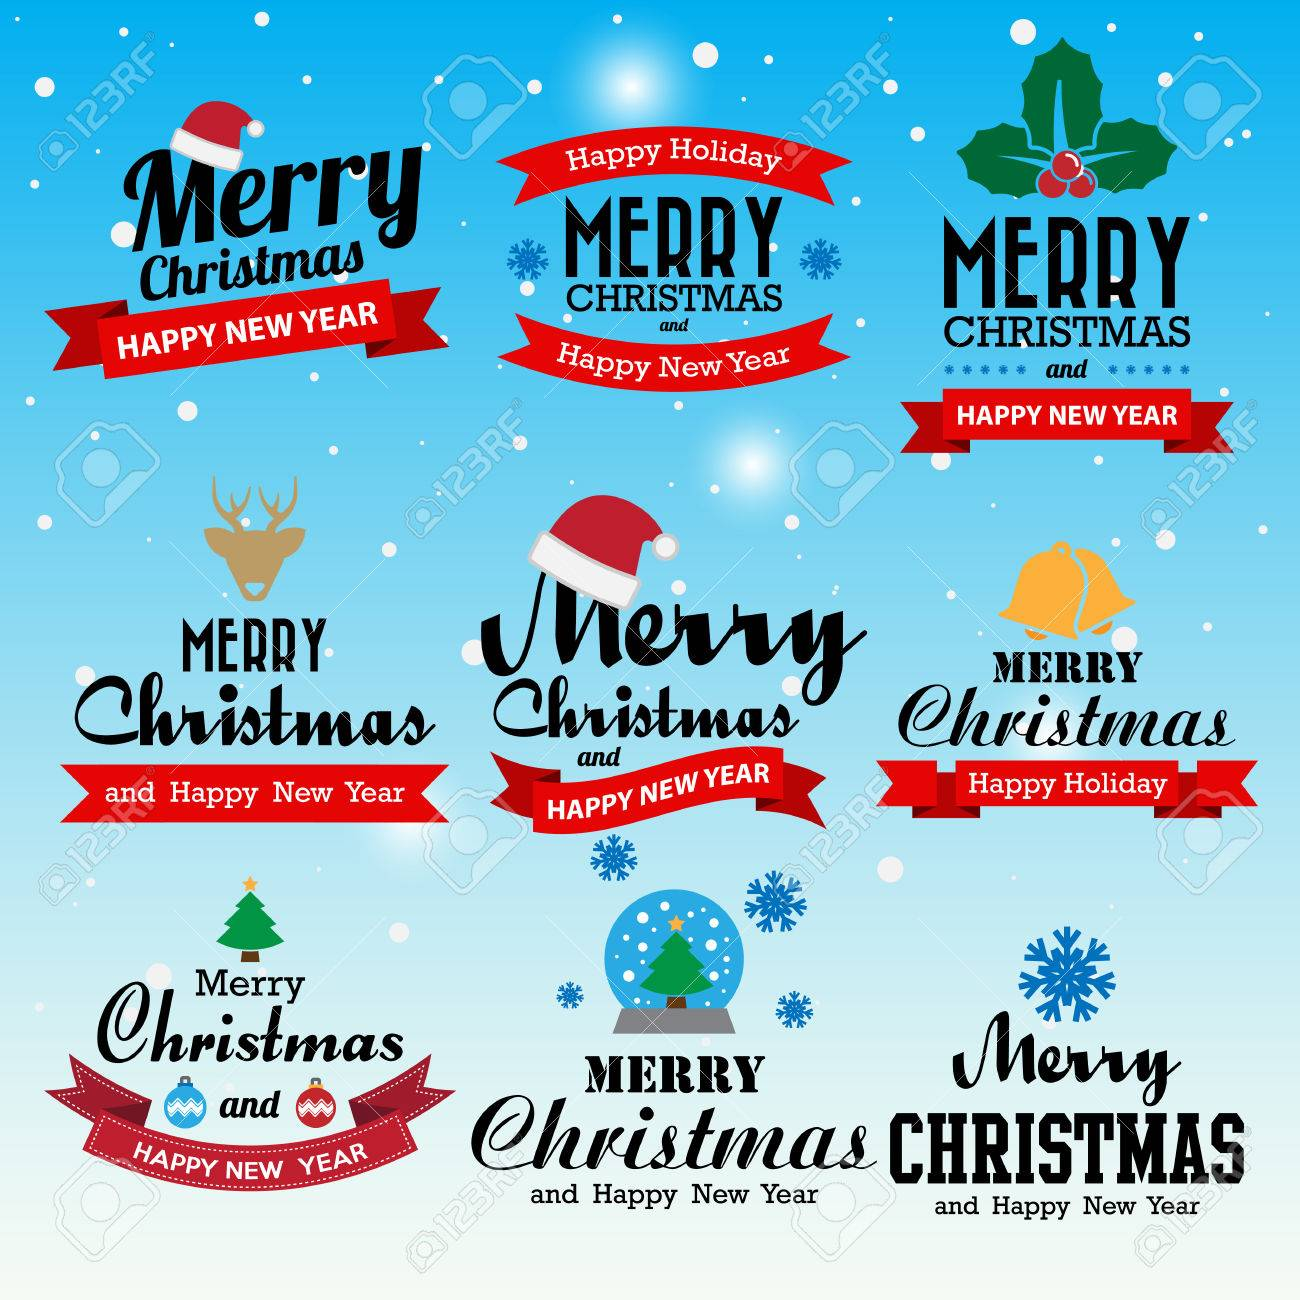 Merry Christmas and Happy New Year typographic background,Illustration - 46777928